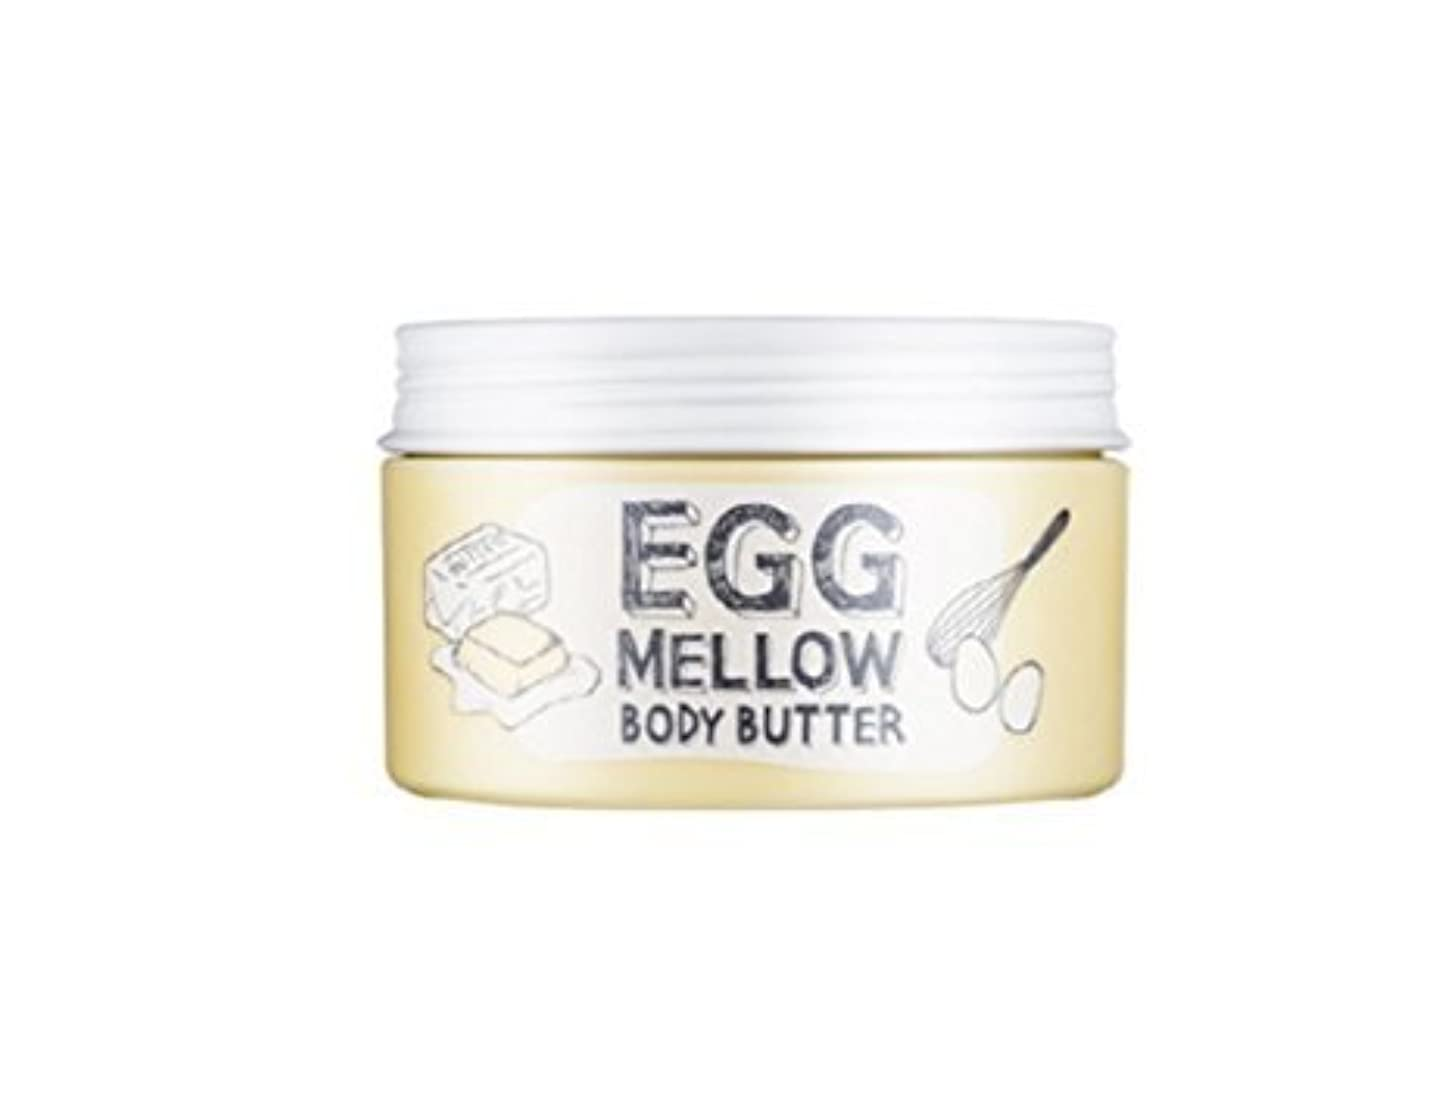 専門アイドル才能のあるToo Cool For School Egg Mellow Body Butter 200g(7.05oz) Moisture body cream [並行輸入品]